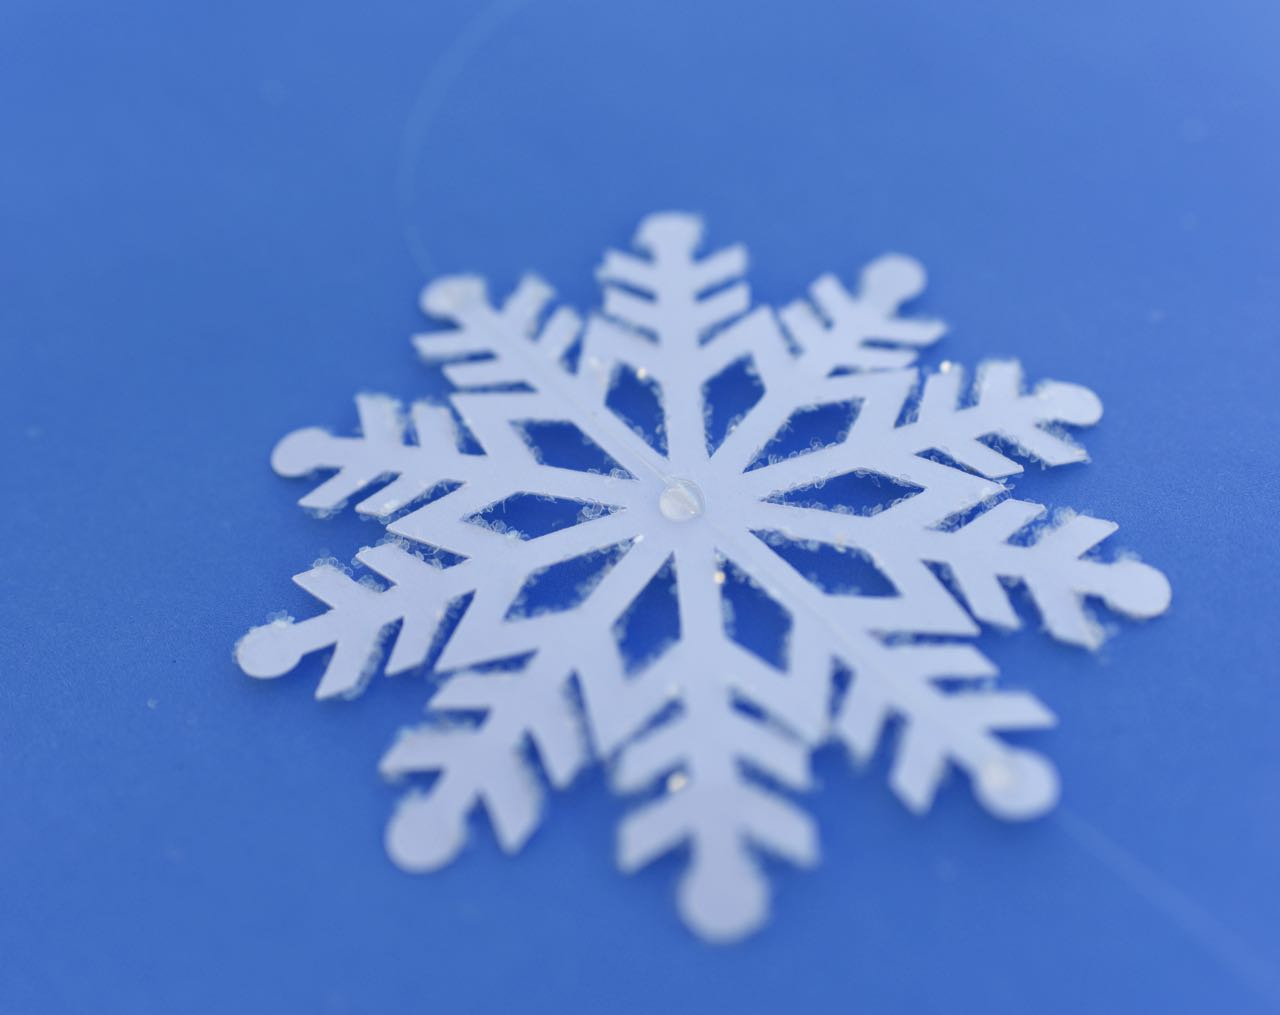 How to make snowflake hanging decorations